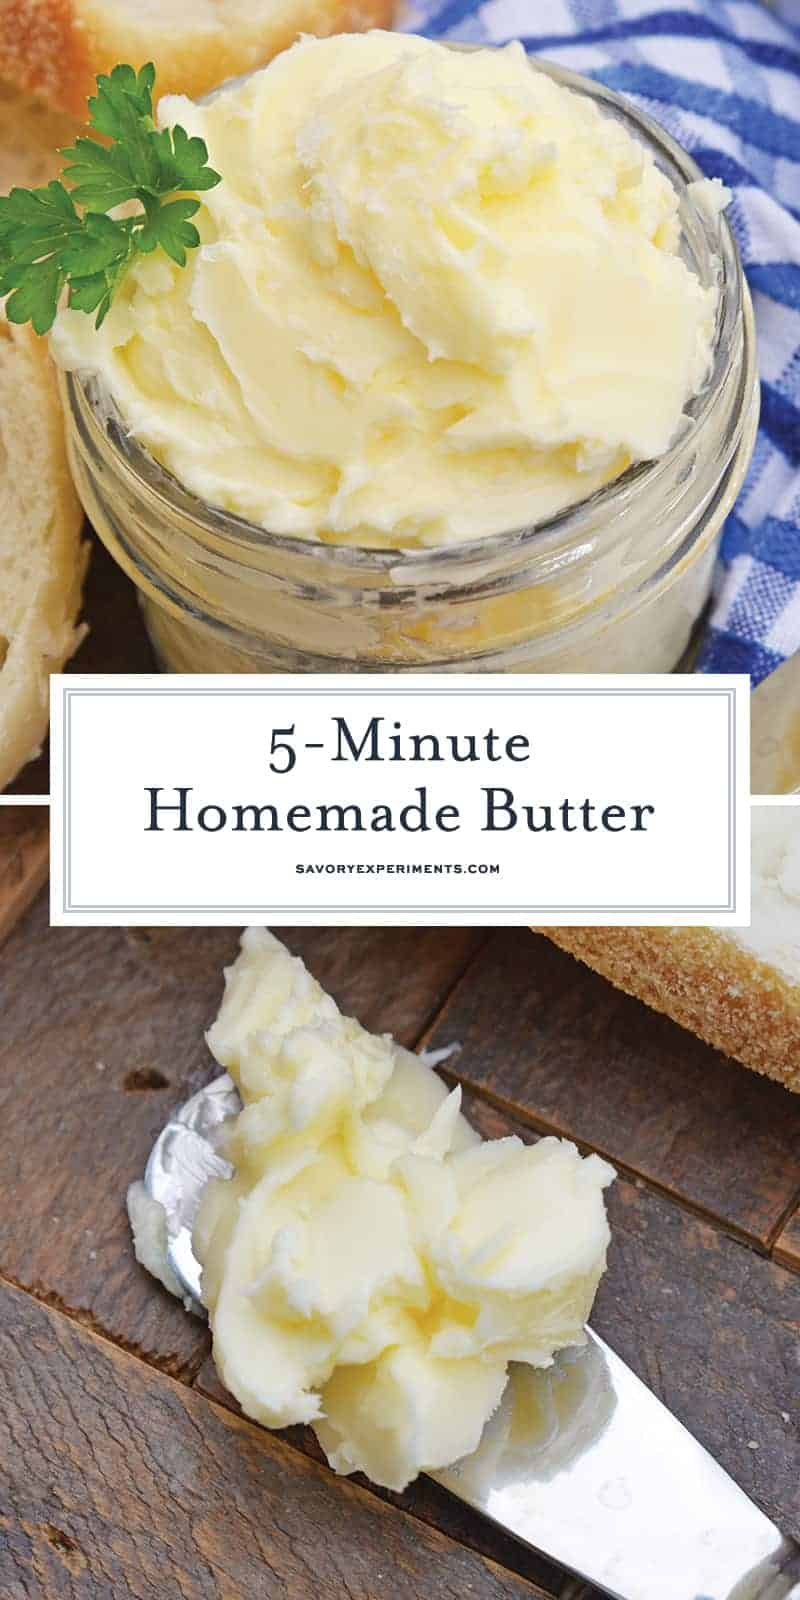 This Homemade Butter Recipe is ready in just 5 minutes using your blender, heavy cream, ice water and salt. You'll wonder why you never made butter at home before! #homemadebutter www.savoryexperiments.com